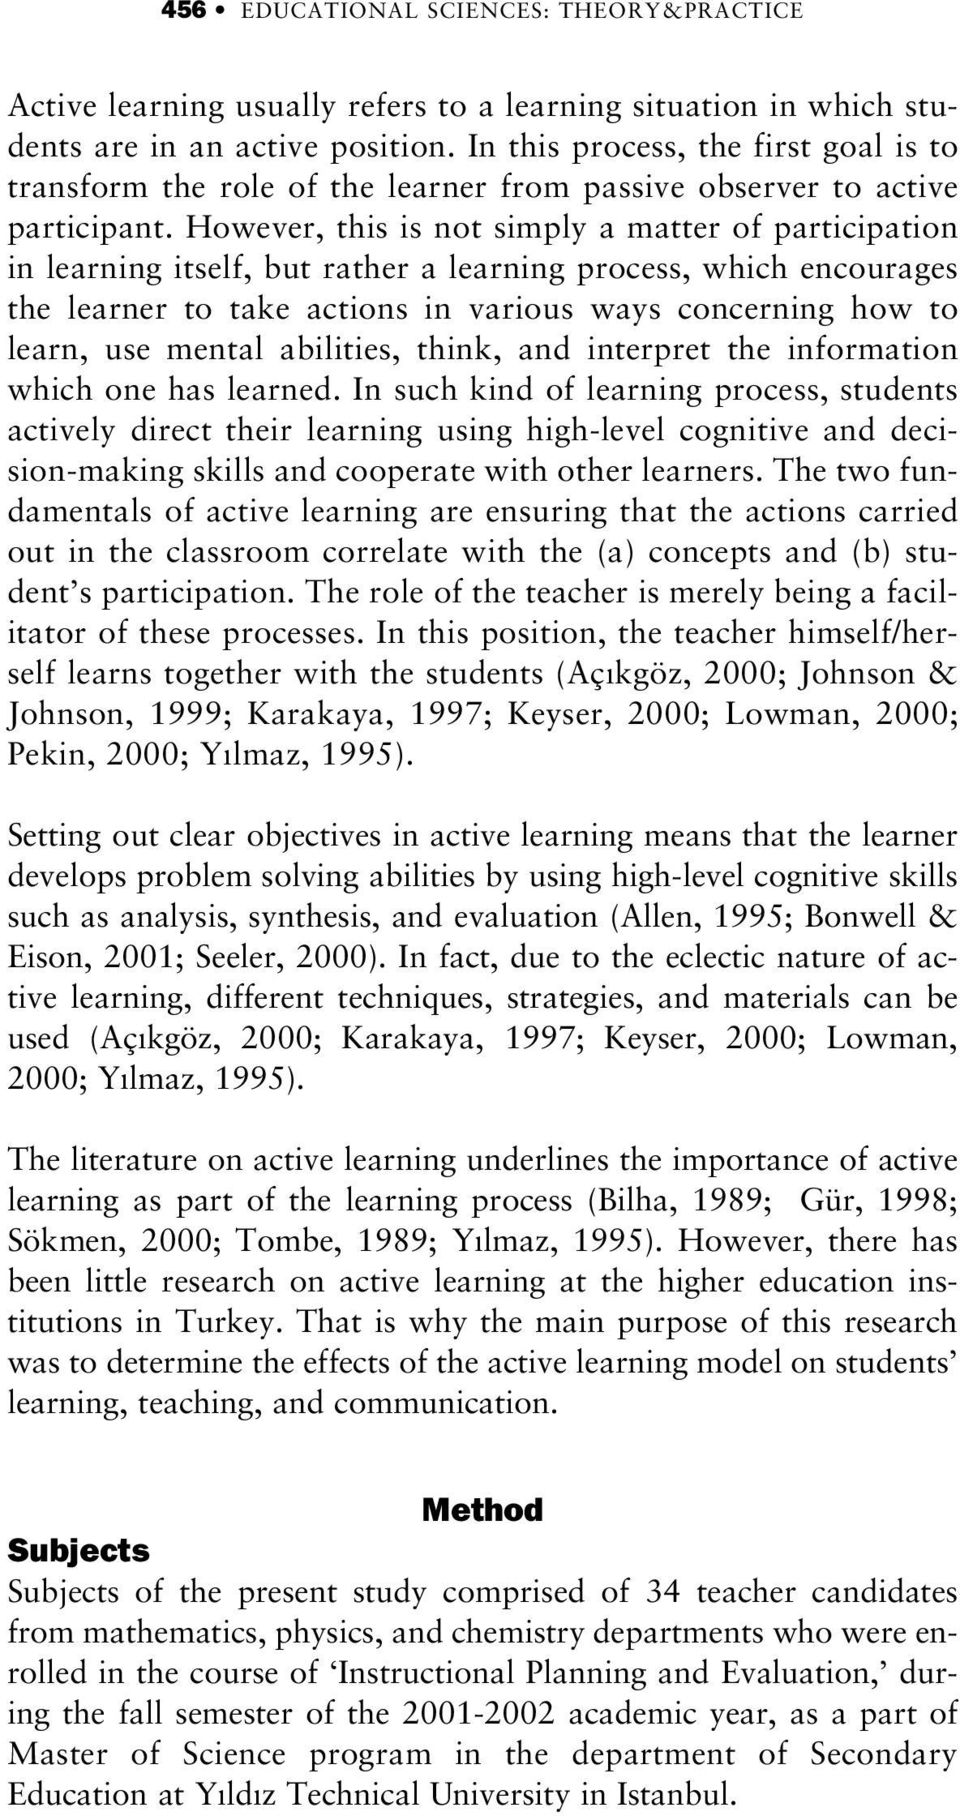 However, this is not simply a matter of participation in learning itself, but rather a learning process, which encourages the learner to take actions in various ways concerning how to learn, use